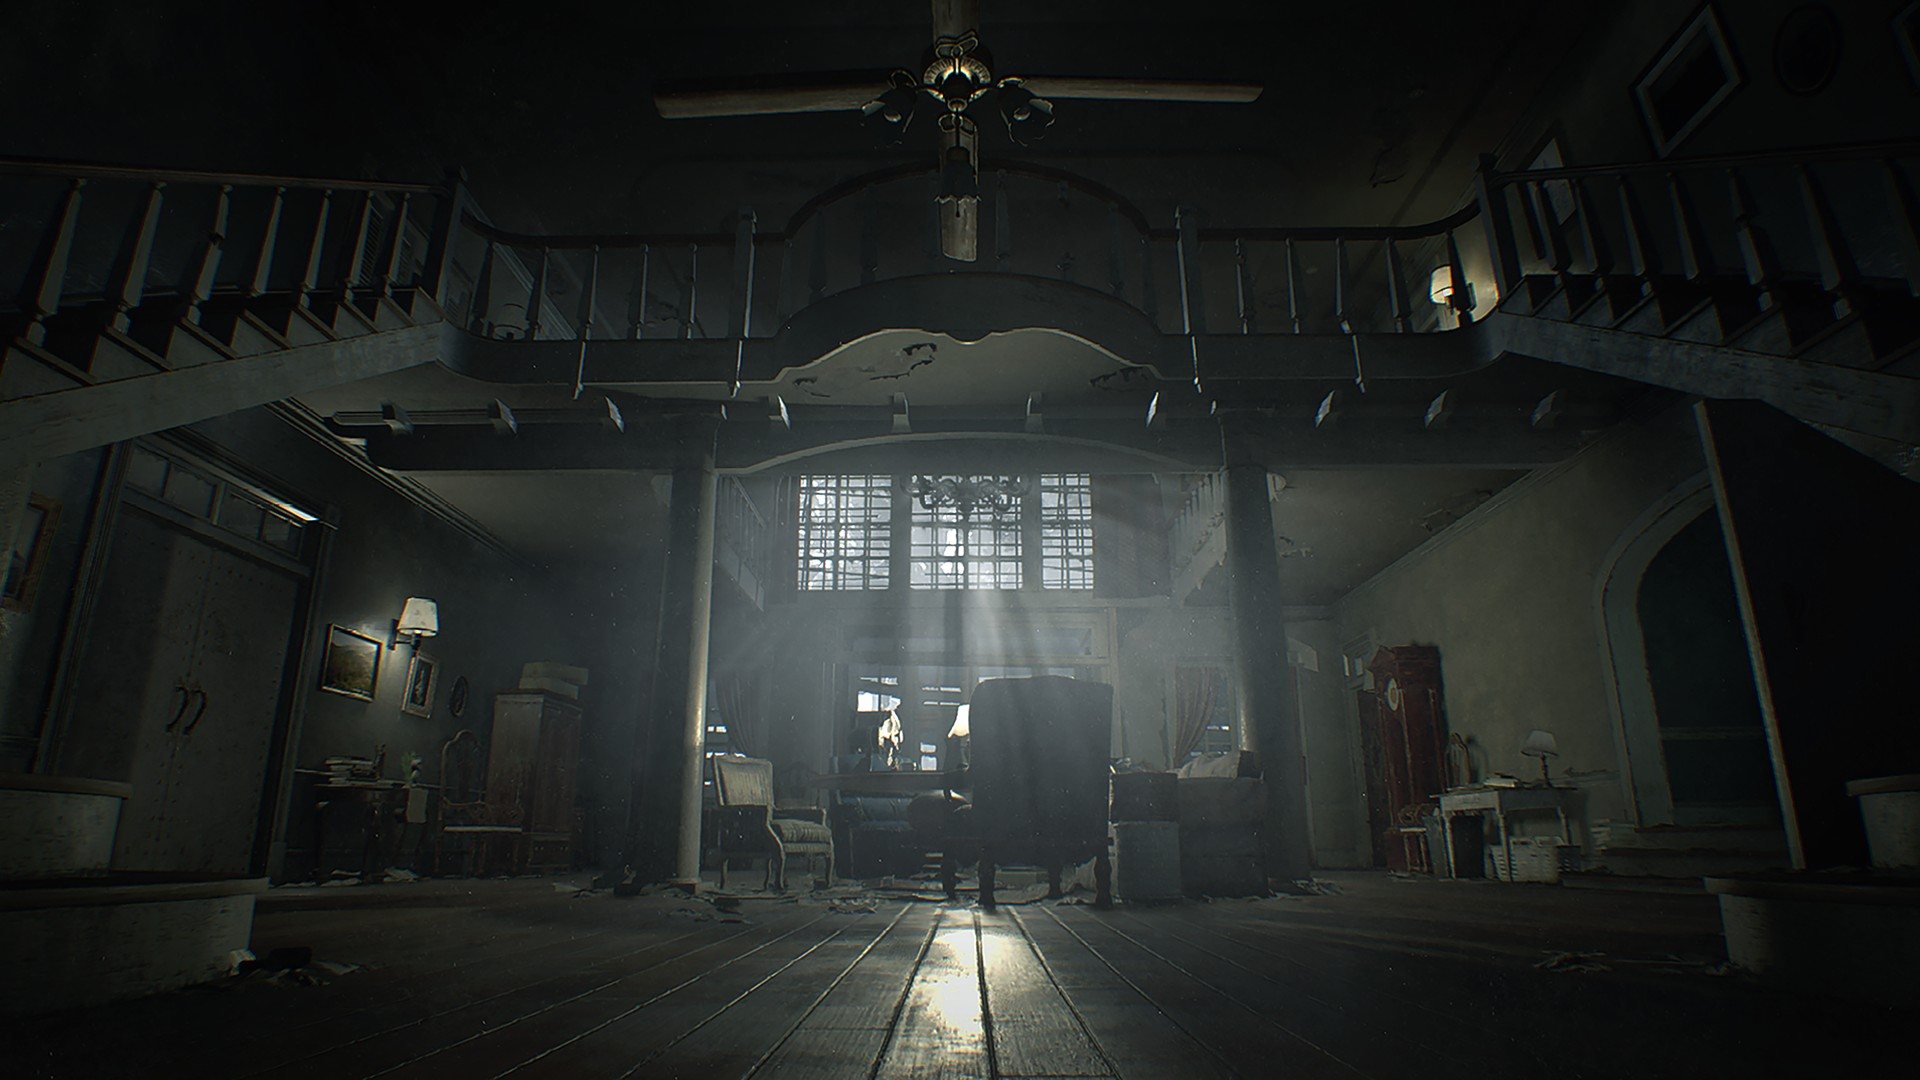 download resident evil 7 biohazard cpy release for pc xbox 360 one playstation 3 playstation 4 ps3 ps4 pro includes all dlc deluxe edition digital edition full version free torrent direct link ftp link magnet torrents extra torrent kickass piratebay tracker iso full speed isp download openload